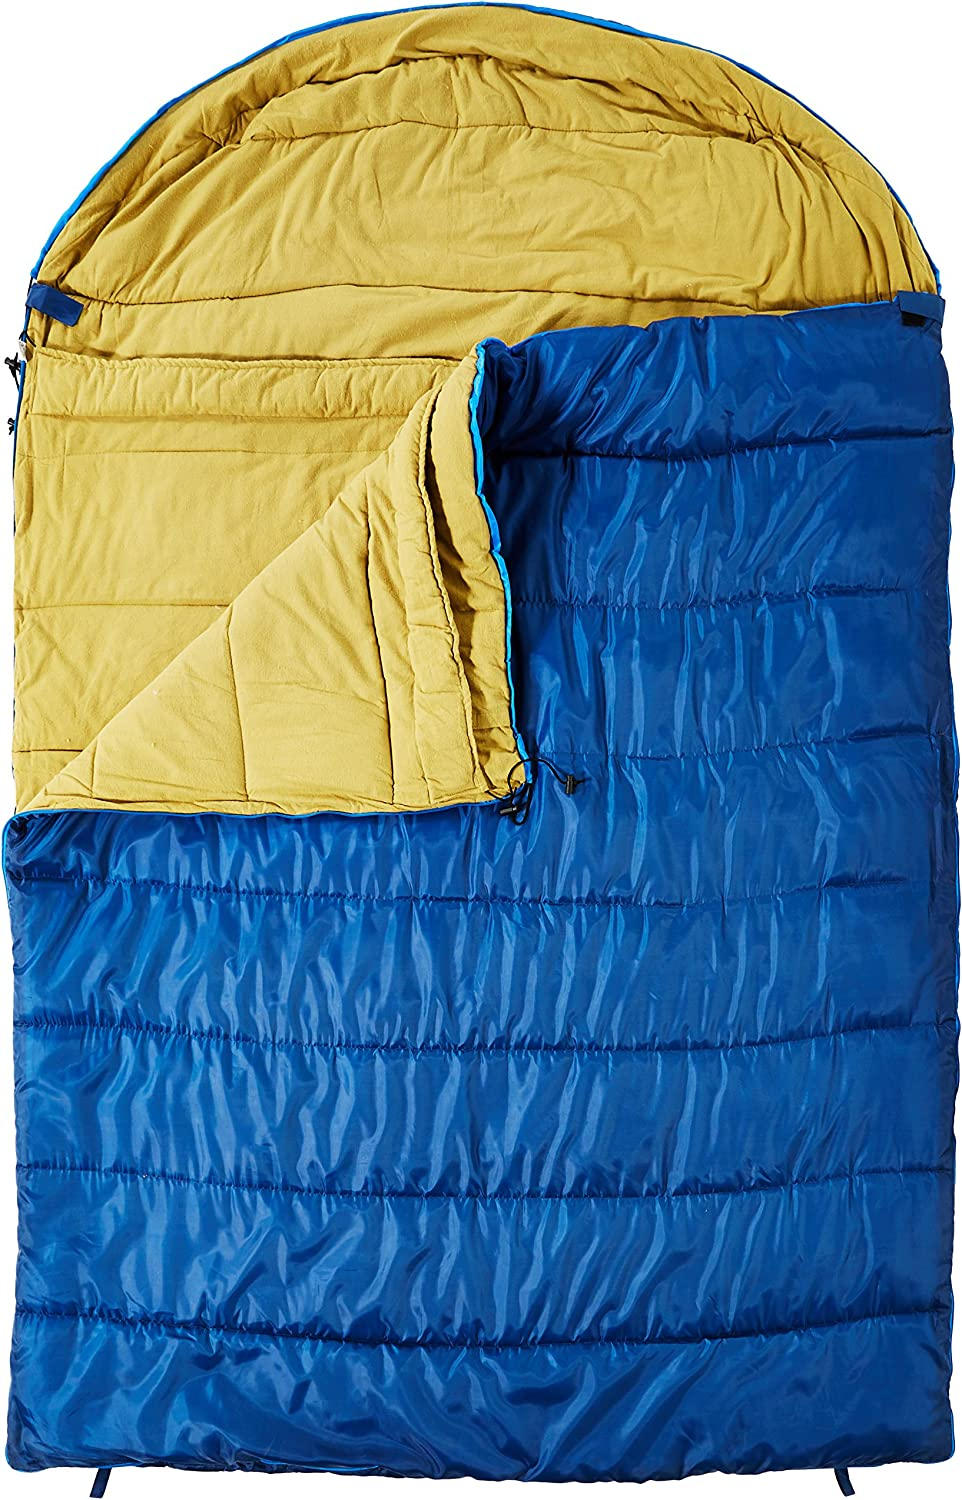 KHOMO GEAR Sleeping Bag - 3 Season Camping for – OFFicial mail order Blue Person 2 Free Shipping Cheap Bargain Gift